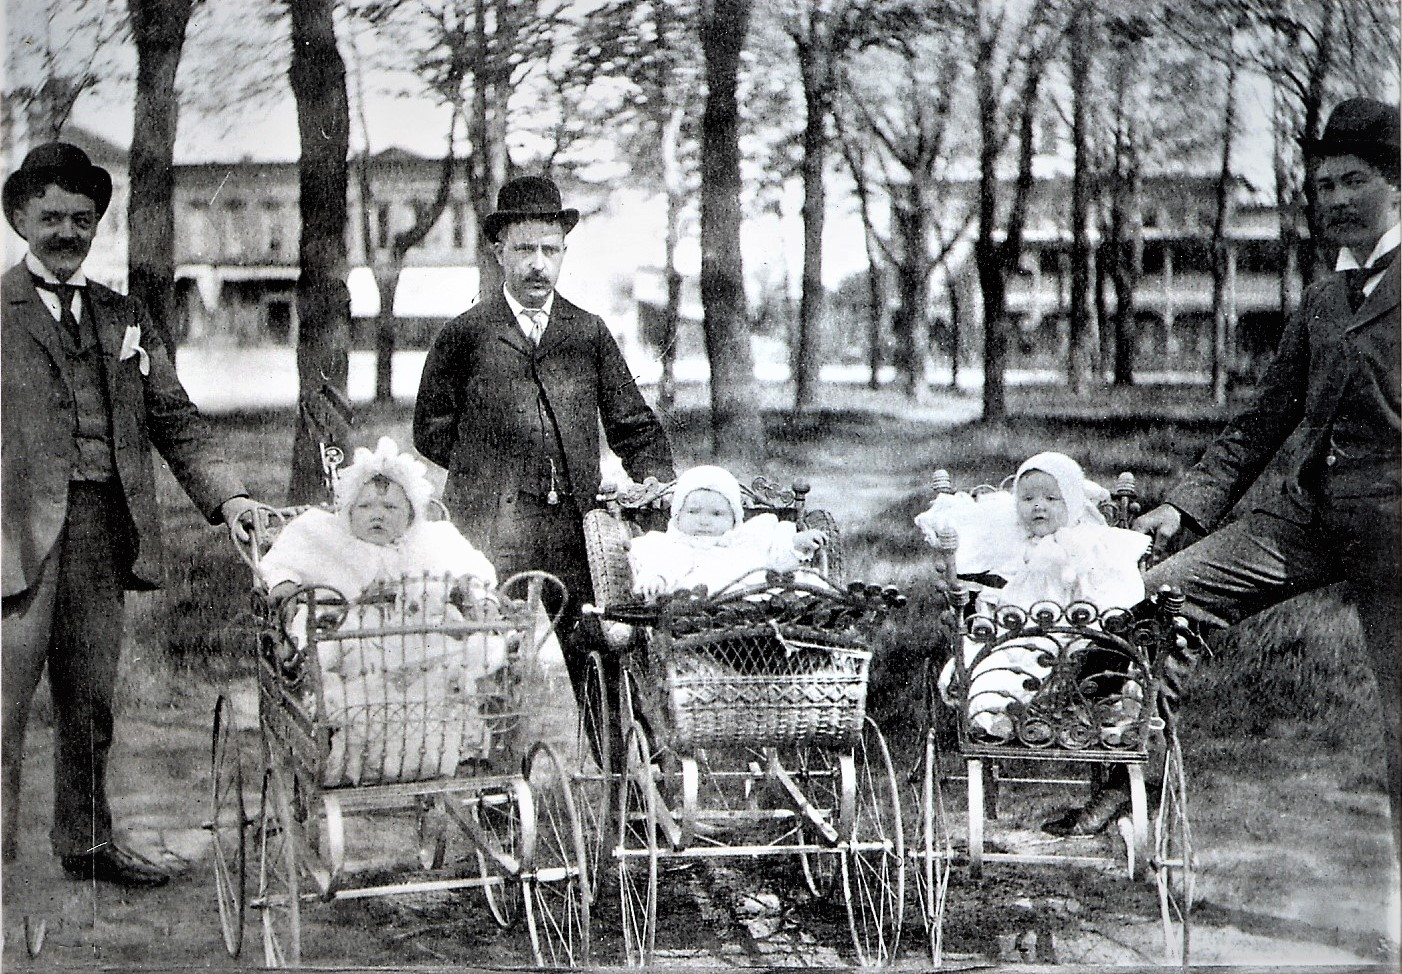 F. E. Edwards, George F. High and Albert Oatman with children in Uptown Park in 1898